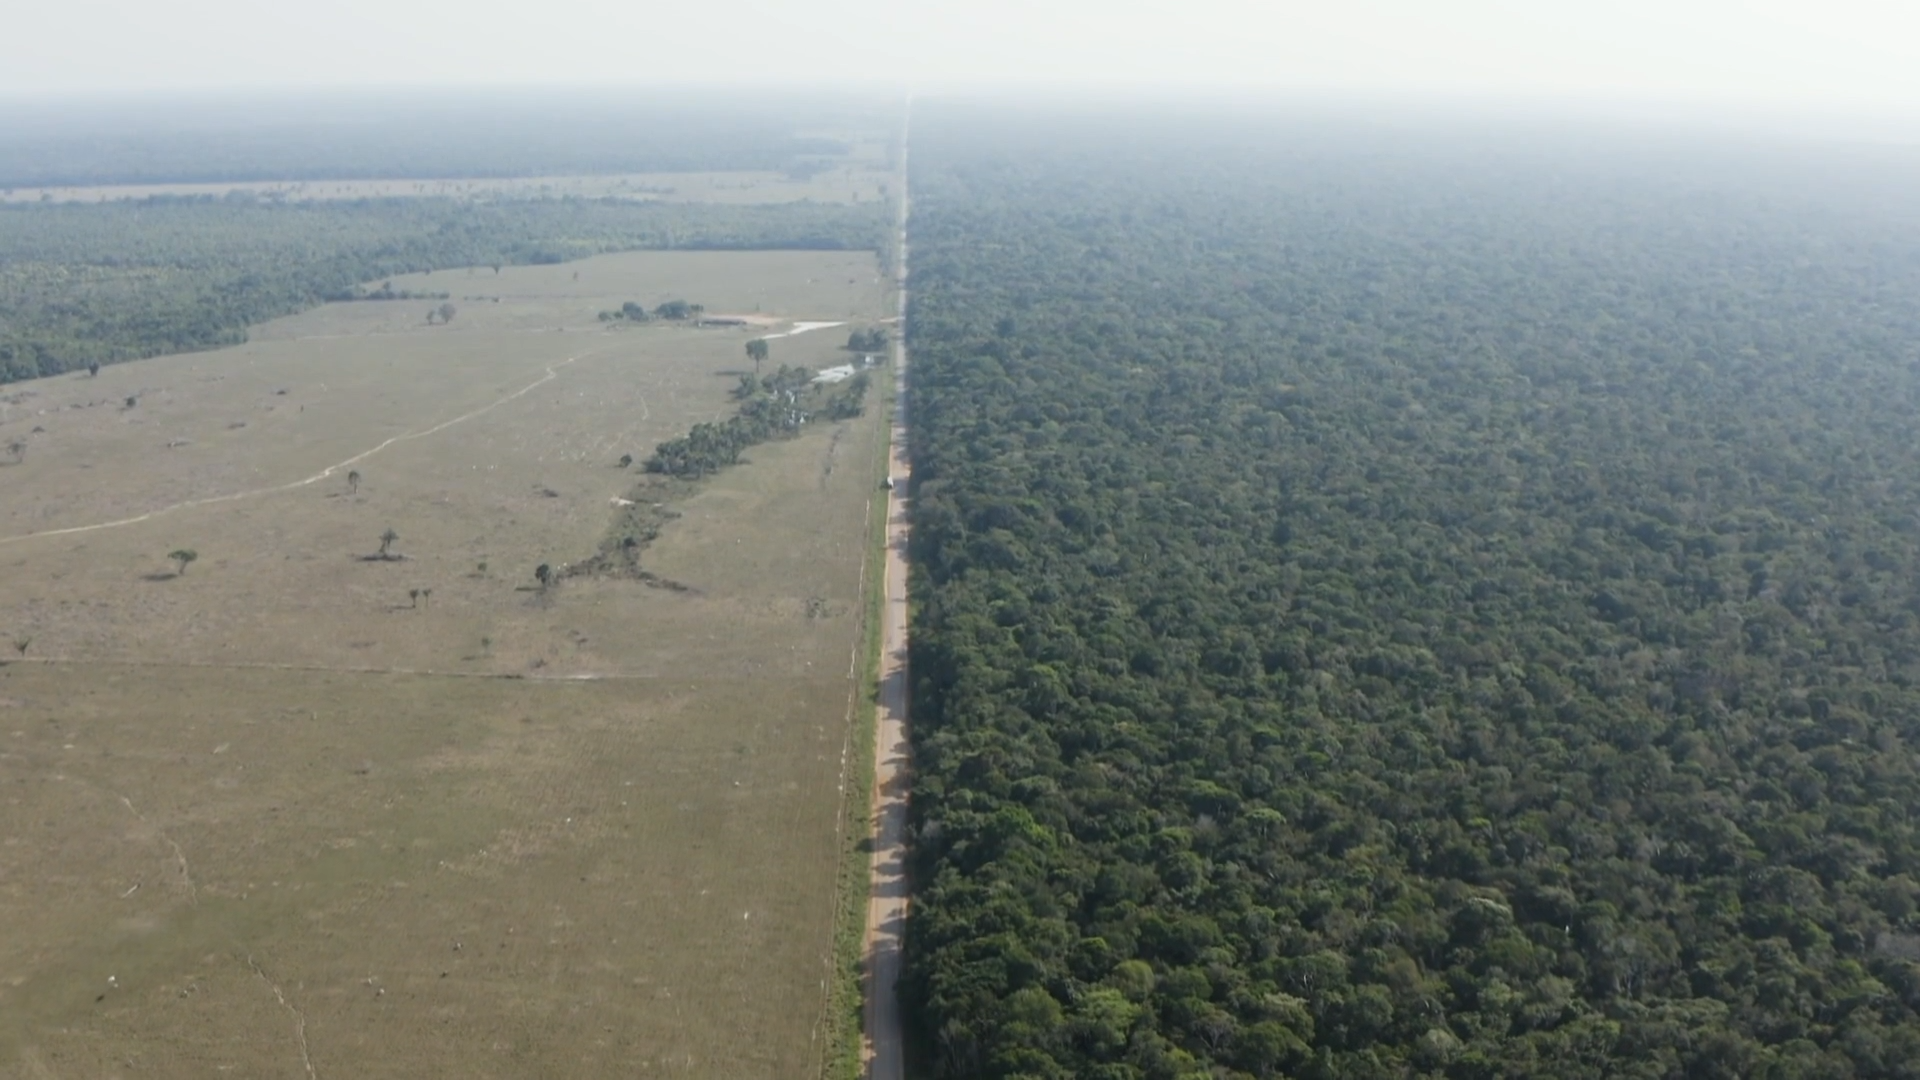 President Bolsonaro and his supporters defy concerns over deforestation of Brazil's Amazon - channel 4